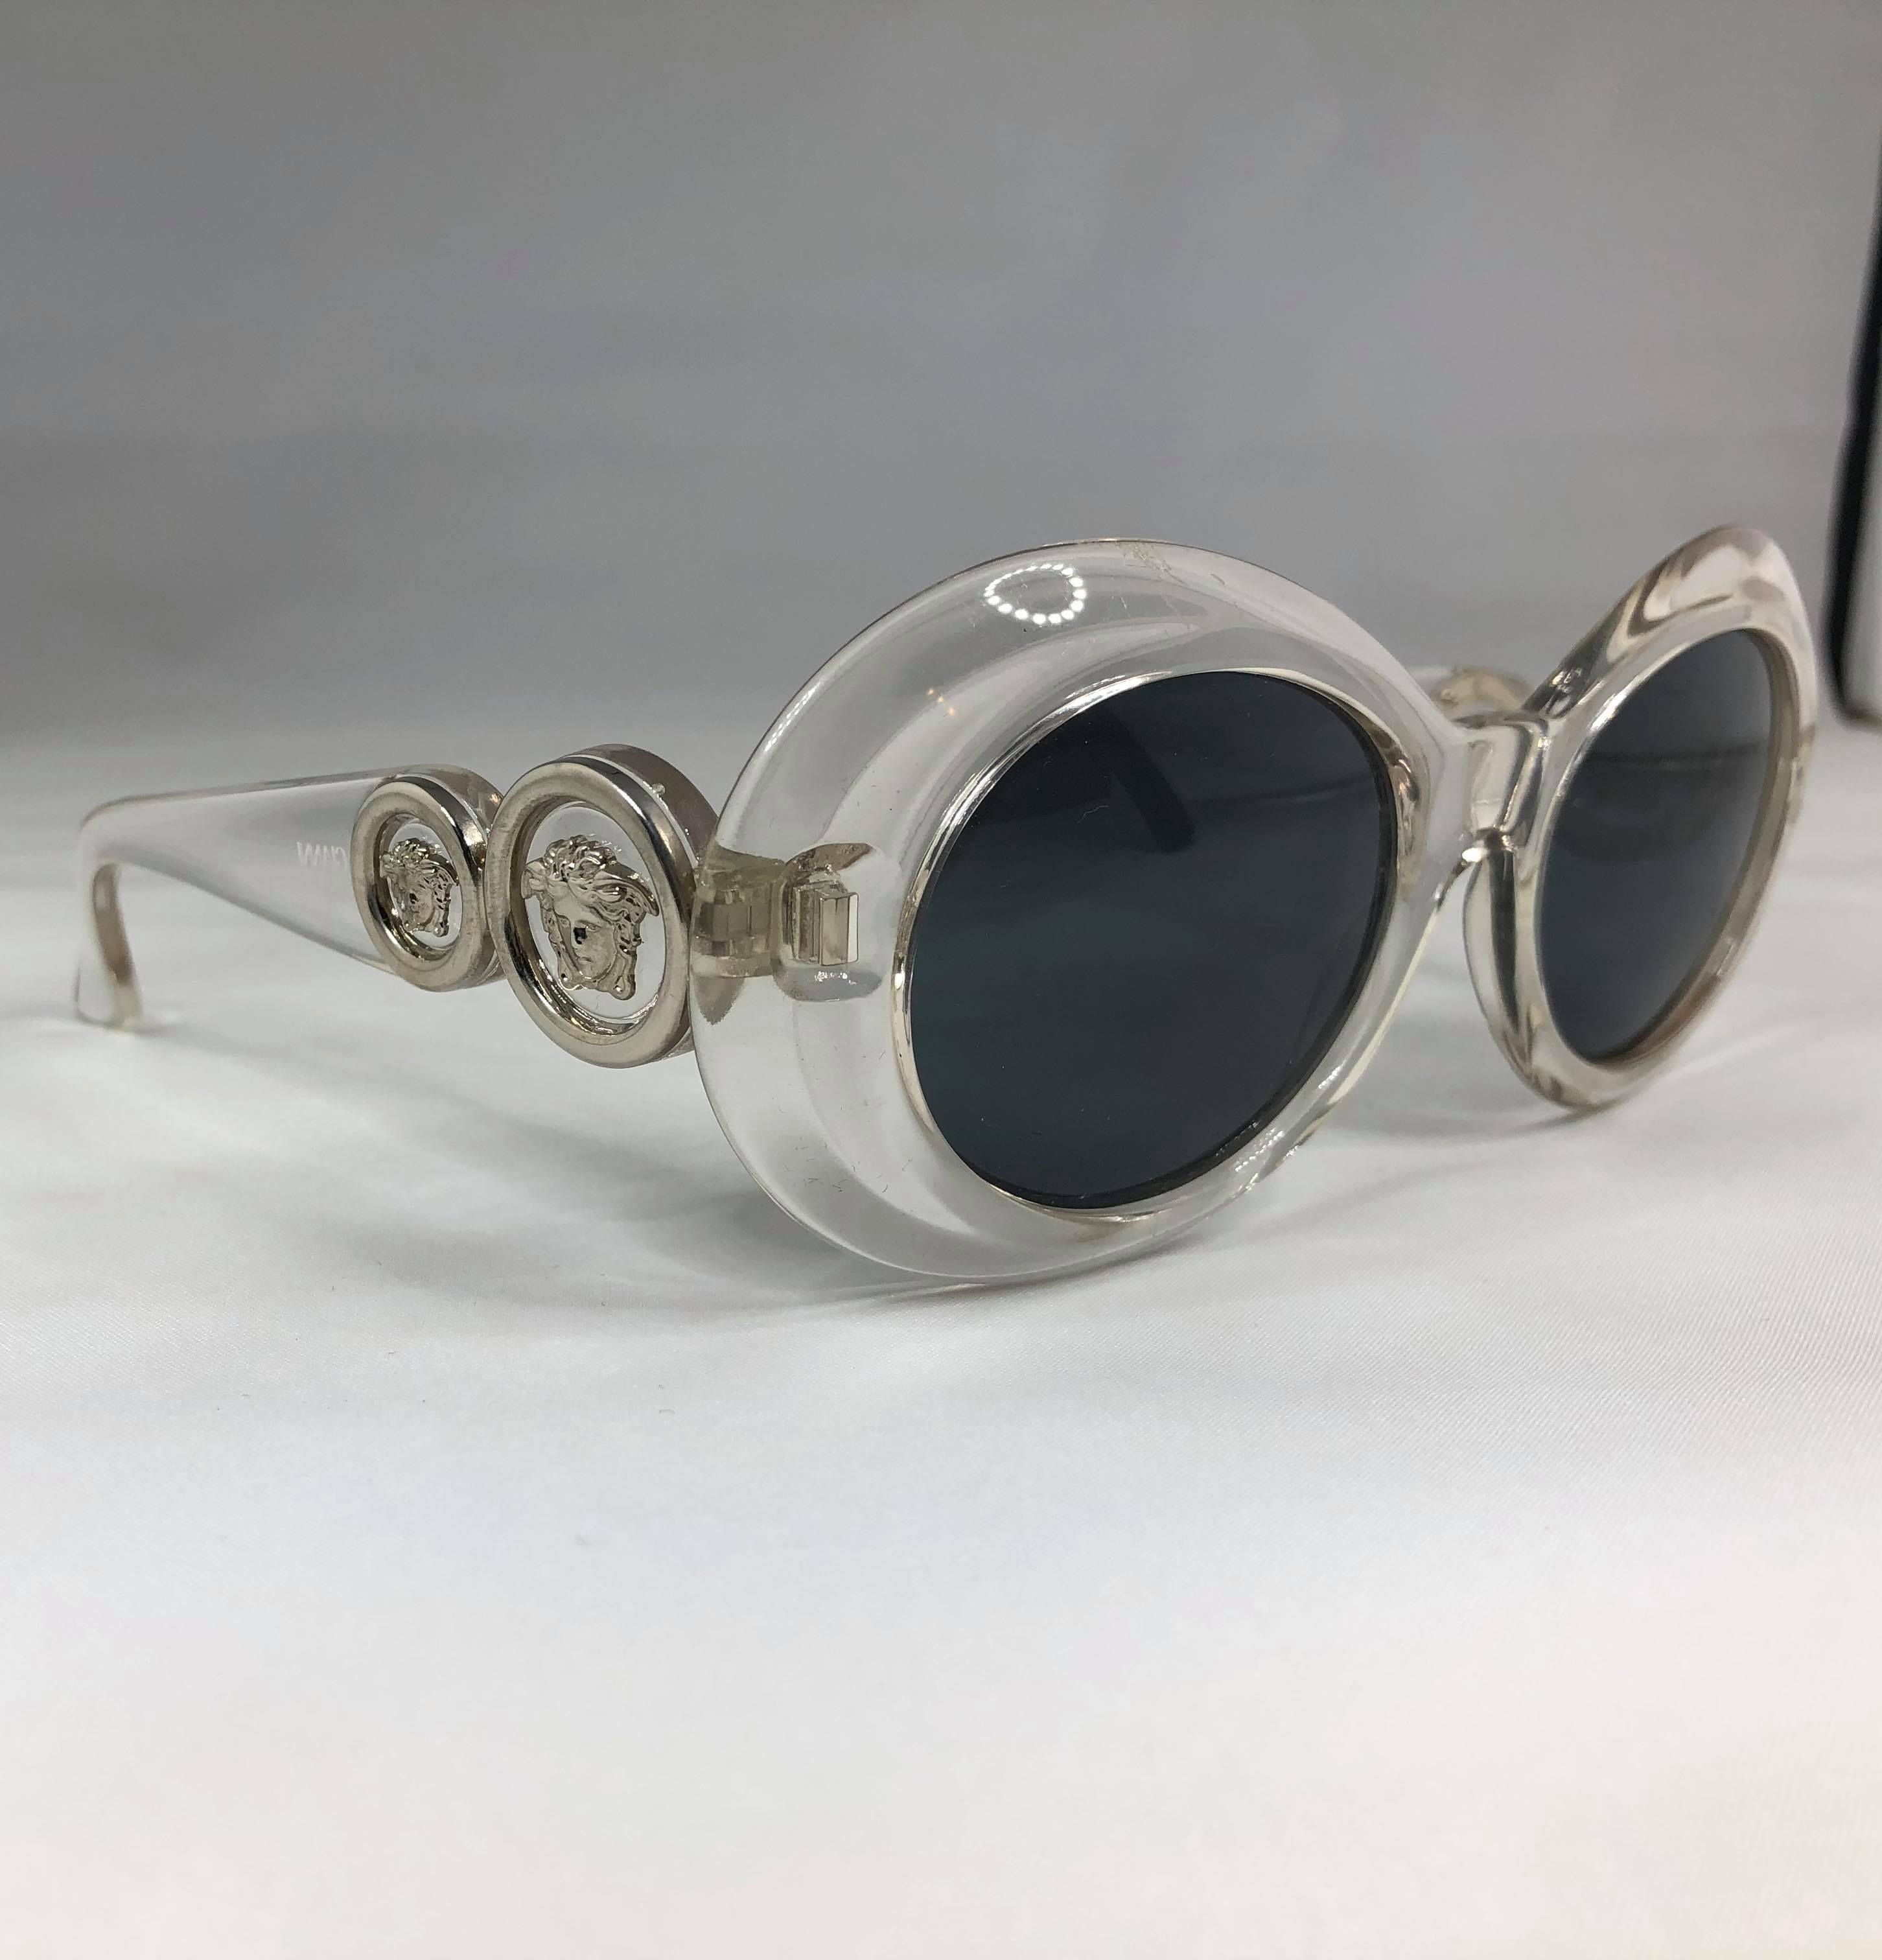 Gianni Versace transparent sunglasses